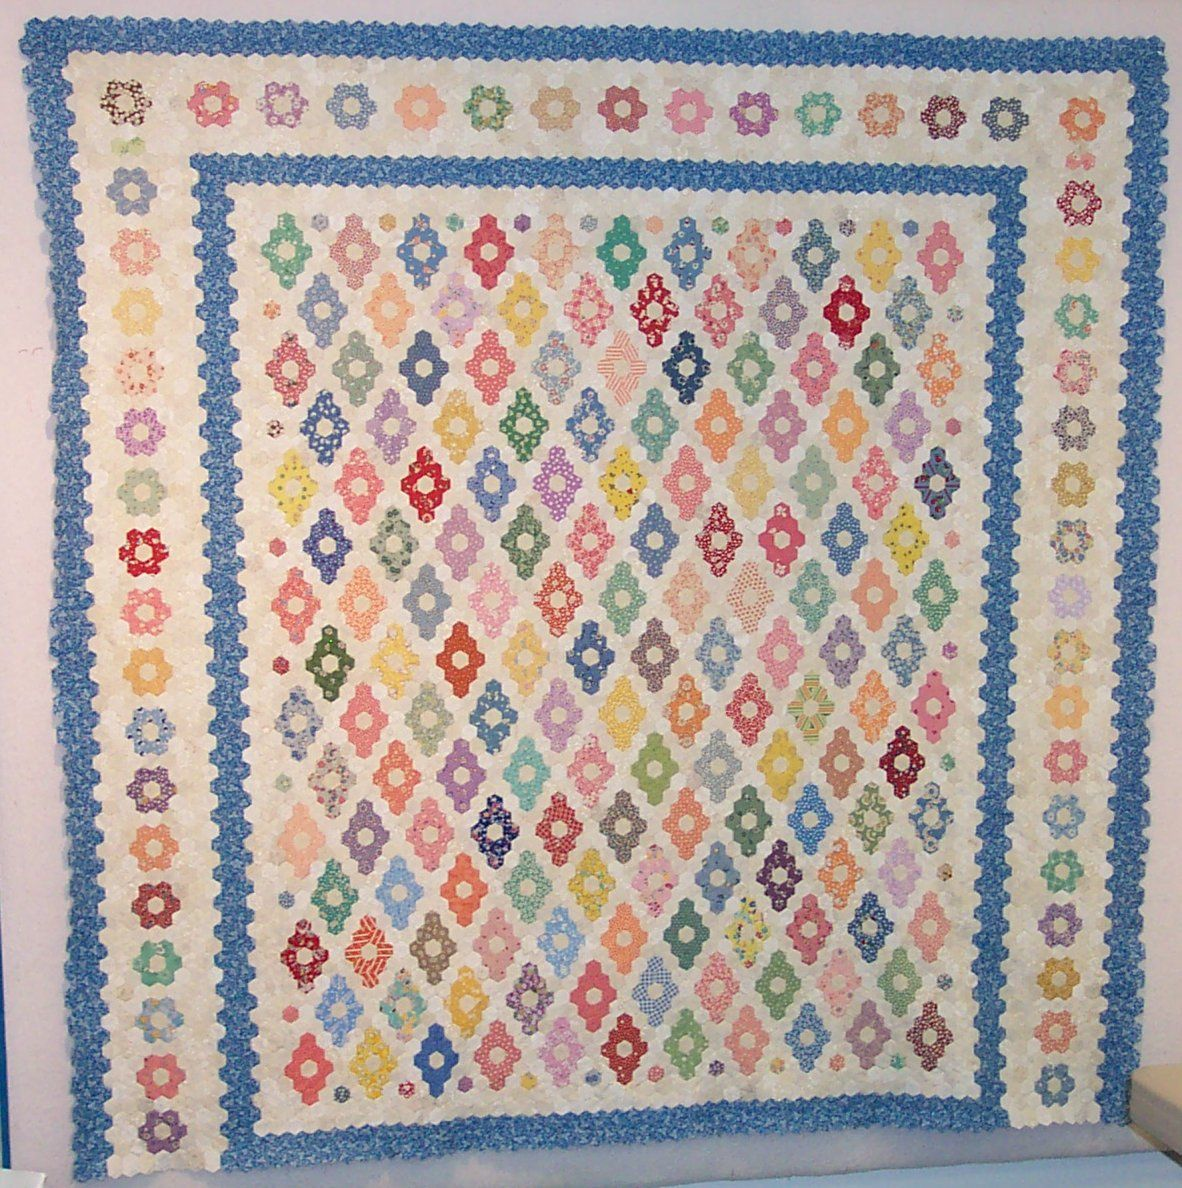 insanity quilt - Google Search